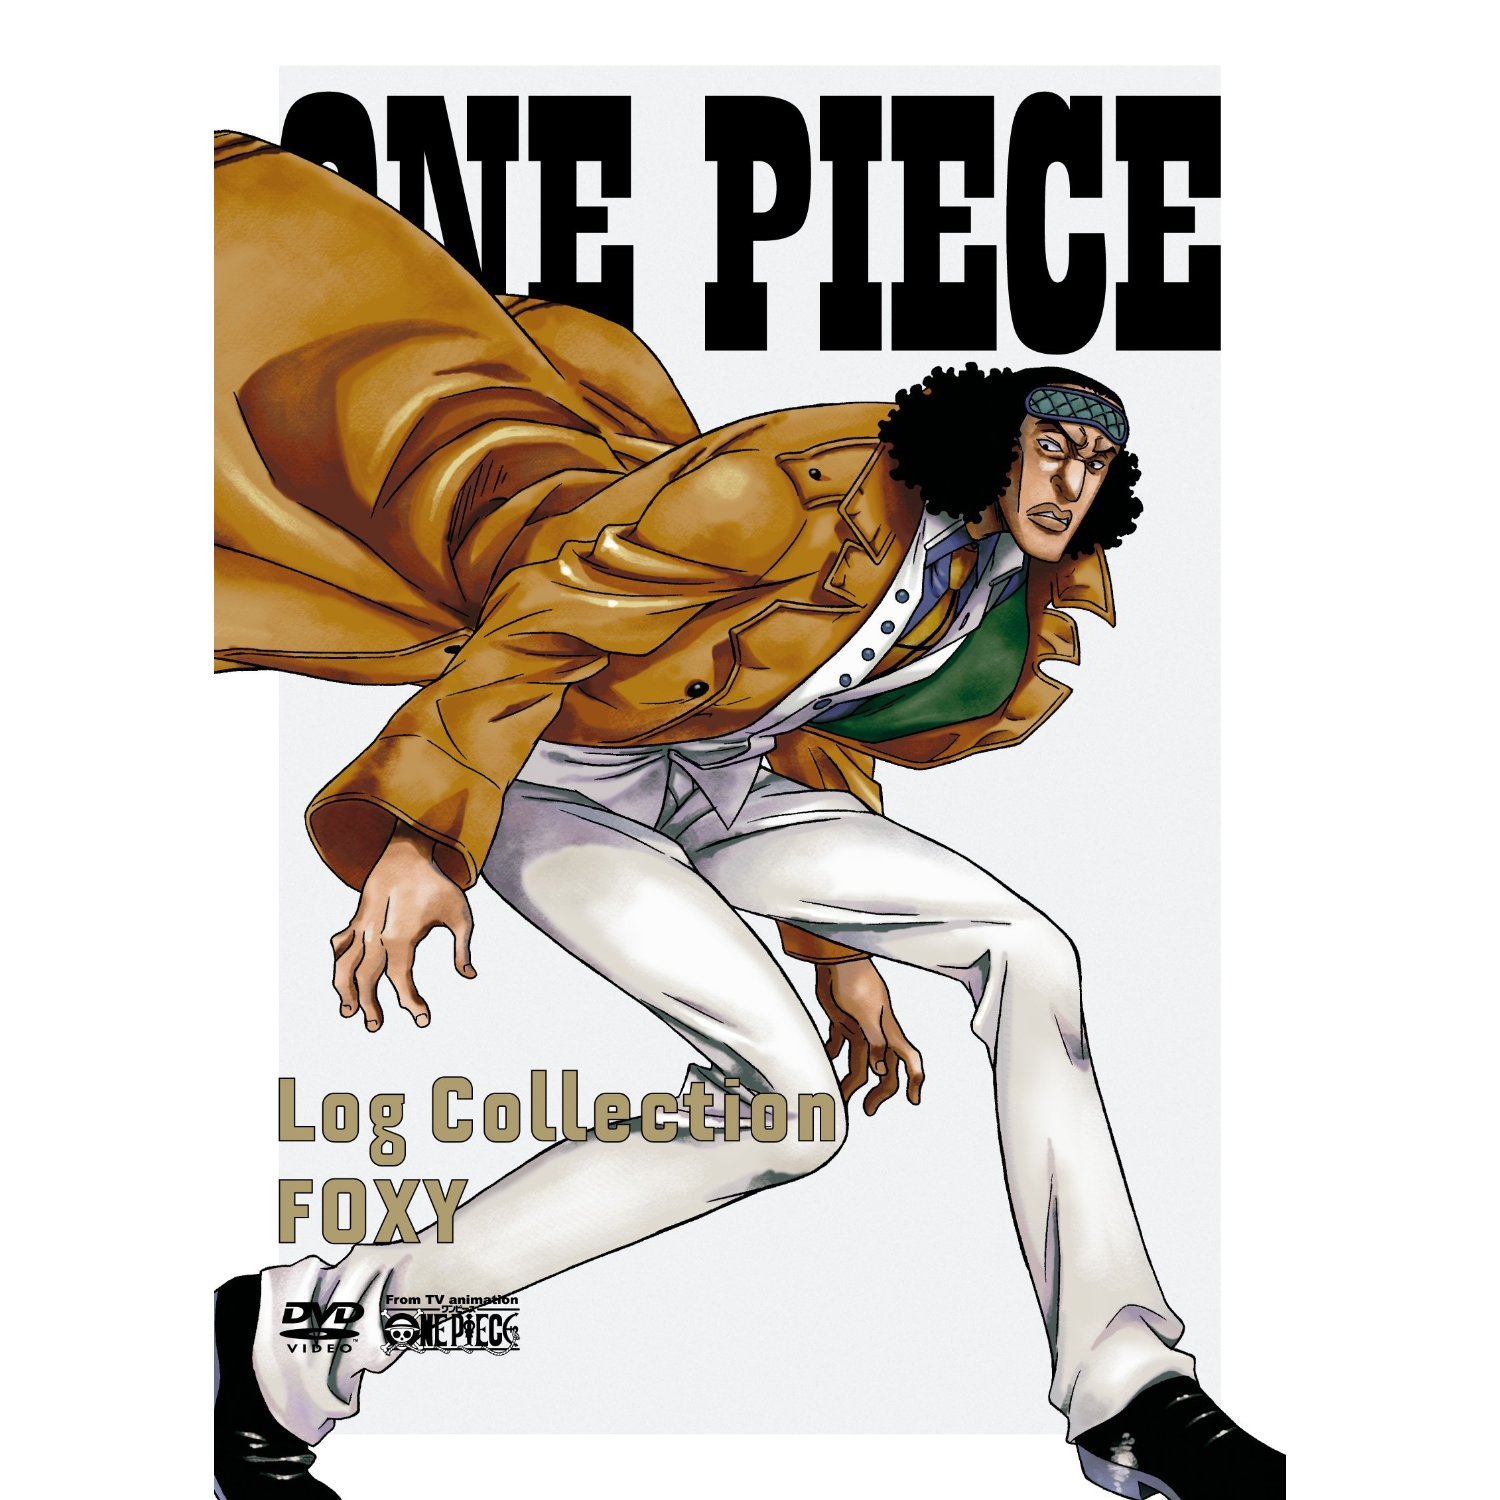 ONE.PIECE.full.989813.jpg